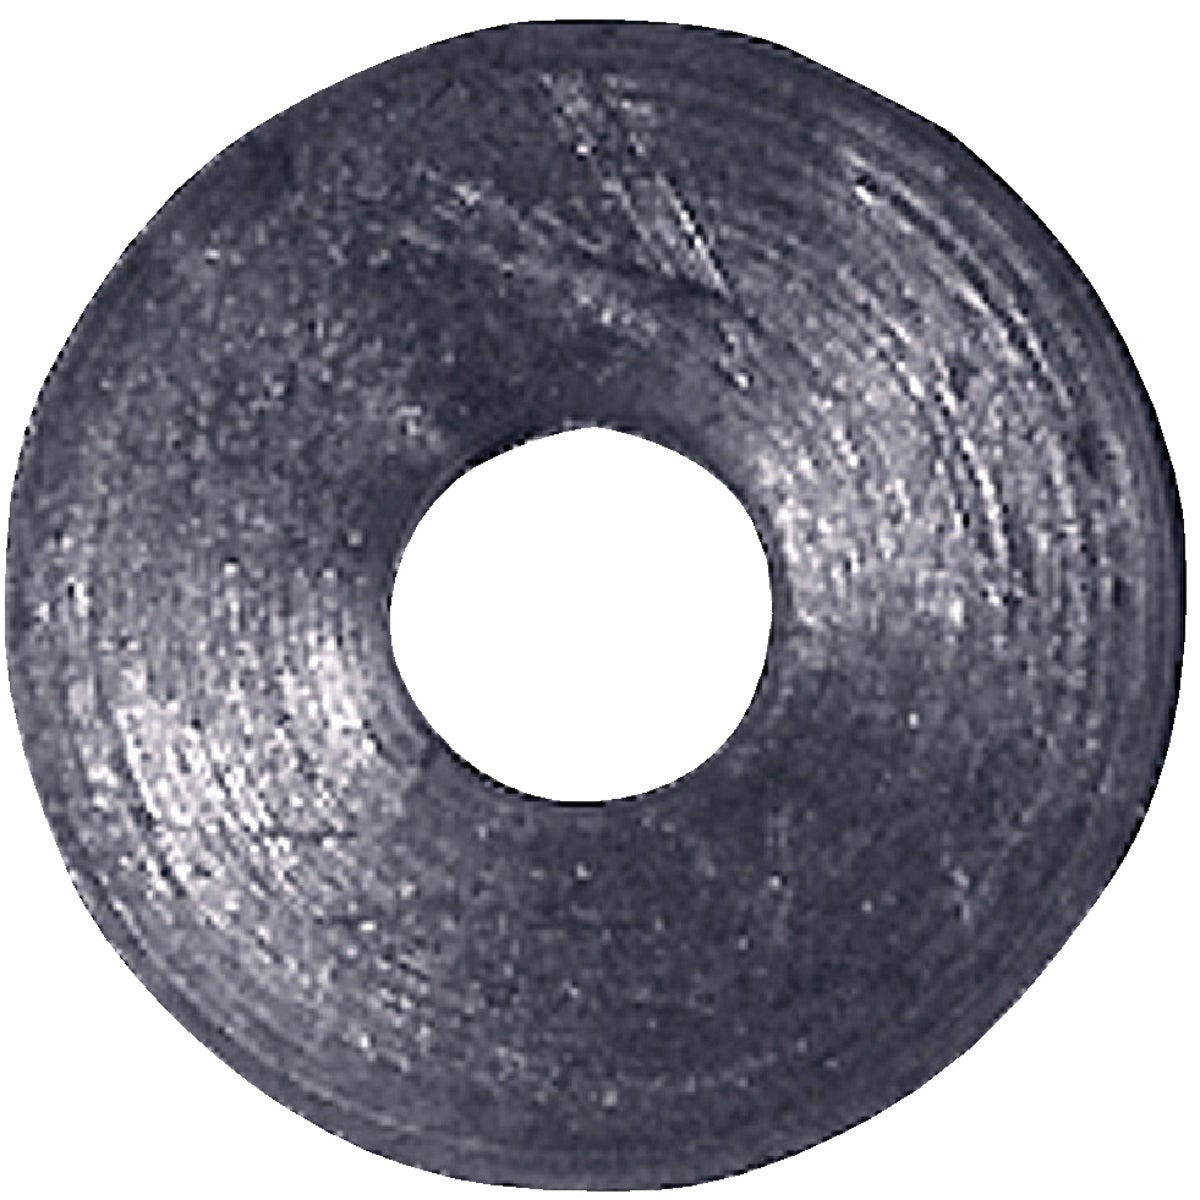 "1/4""L FLAT WASHER - 35269 by Danco Perfect Match"